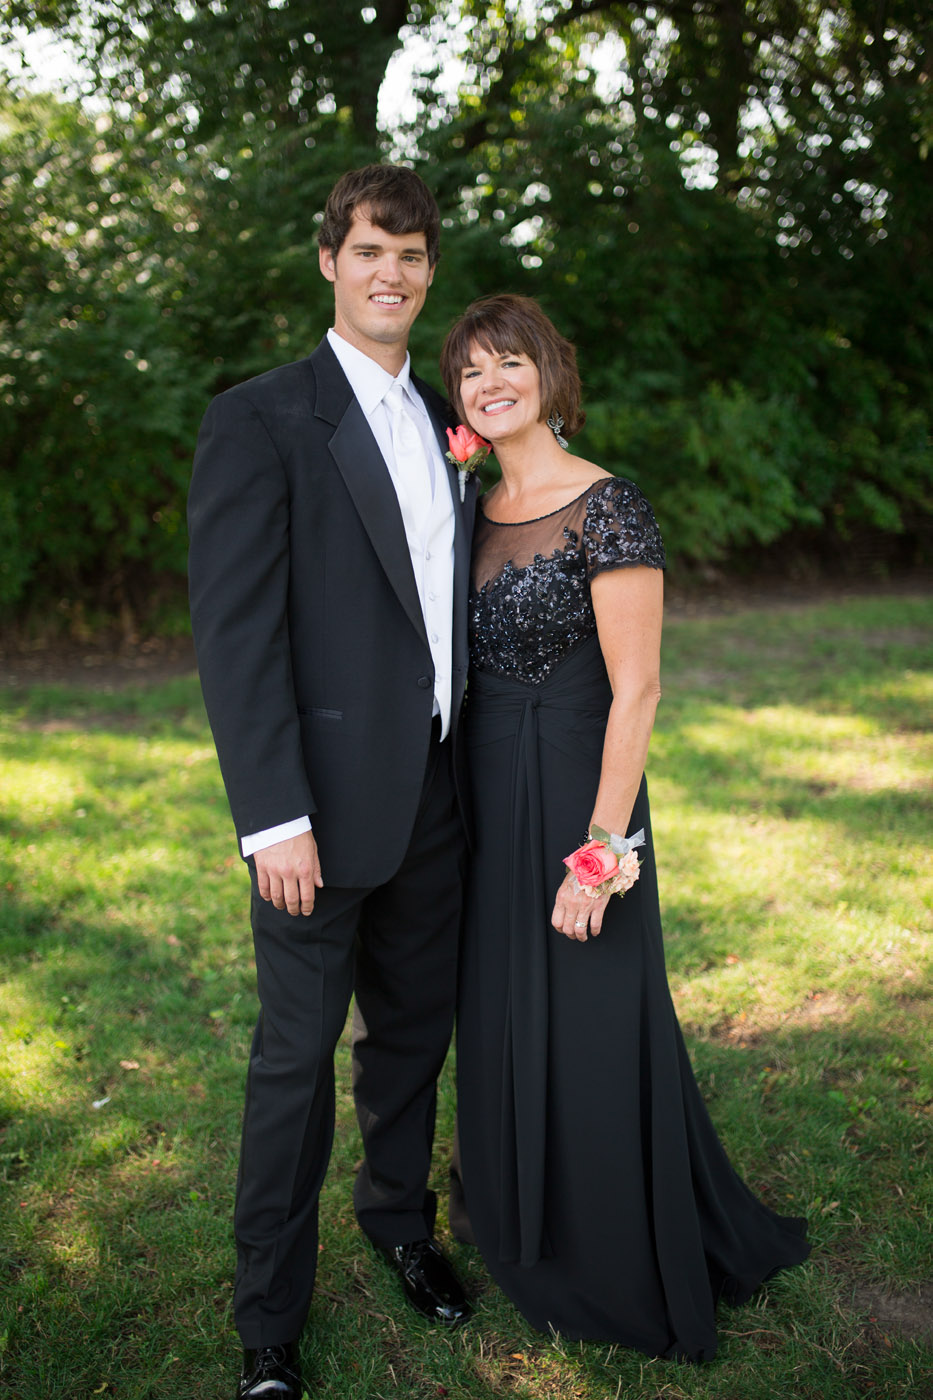 Sinclair Wedding 1 1389.jpg